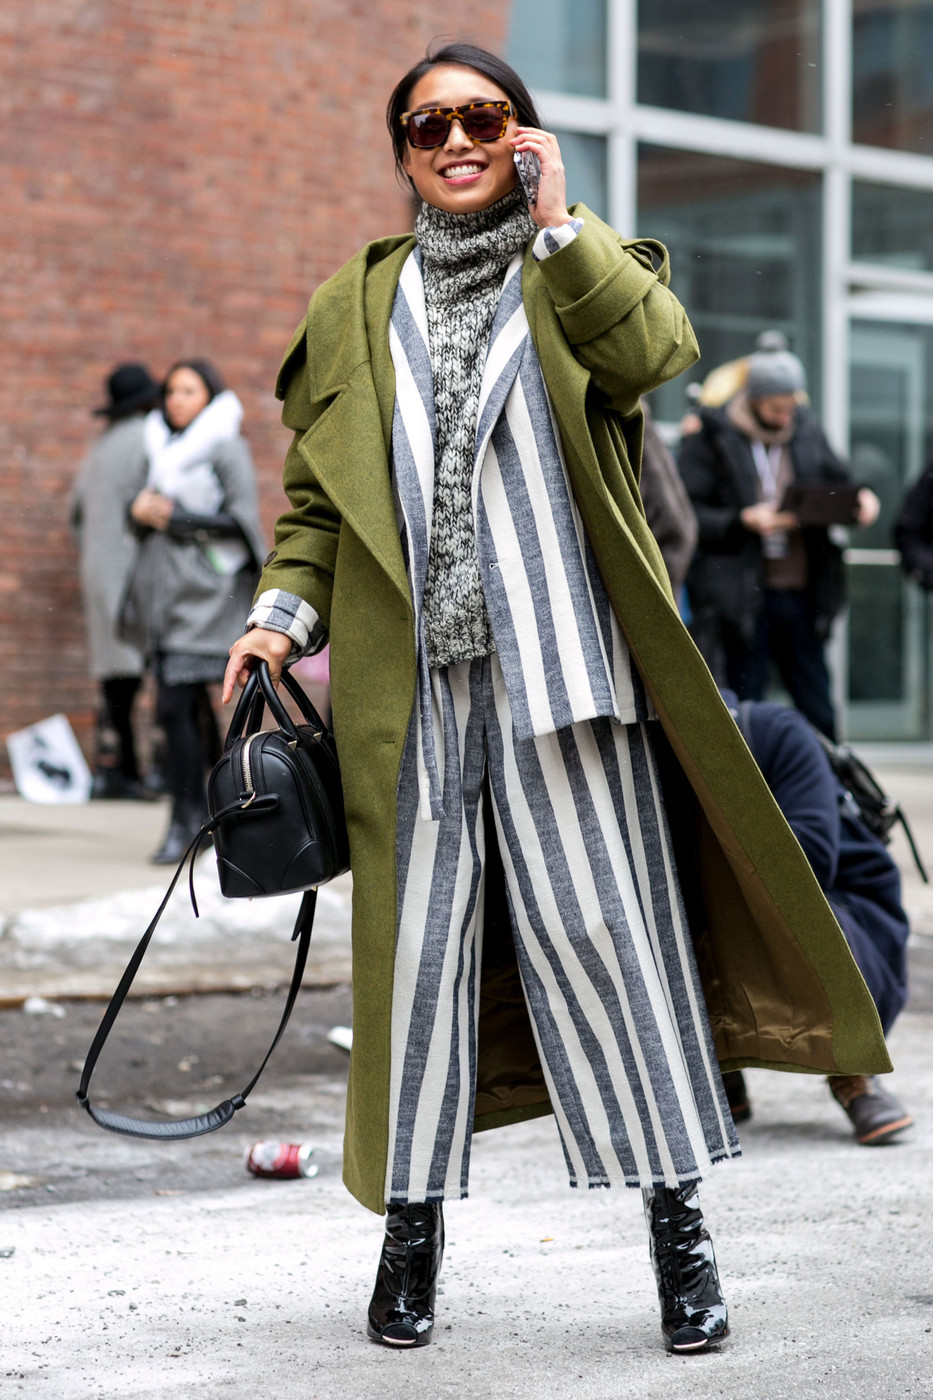 Seeing Stripes Best Street Style From New York Fashion Week Fall 2015 Livingly